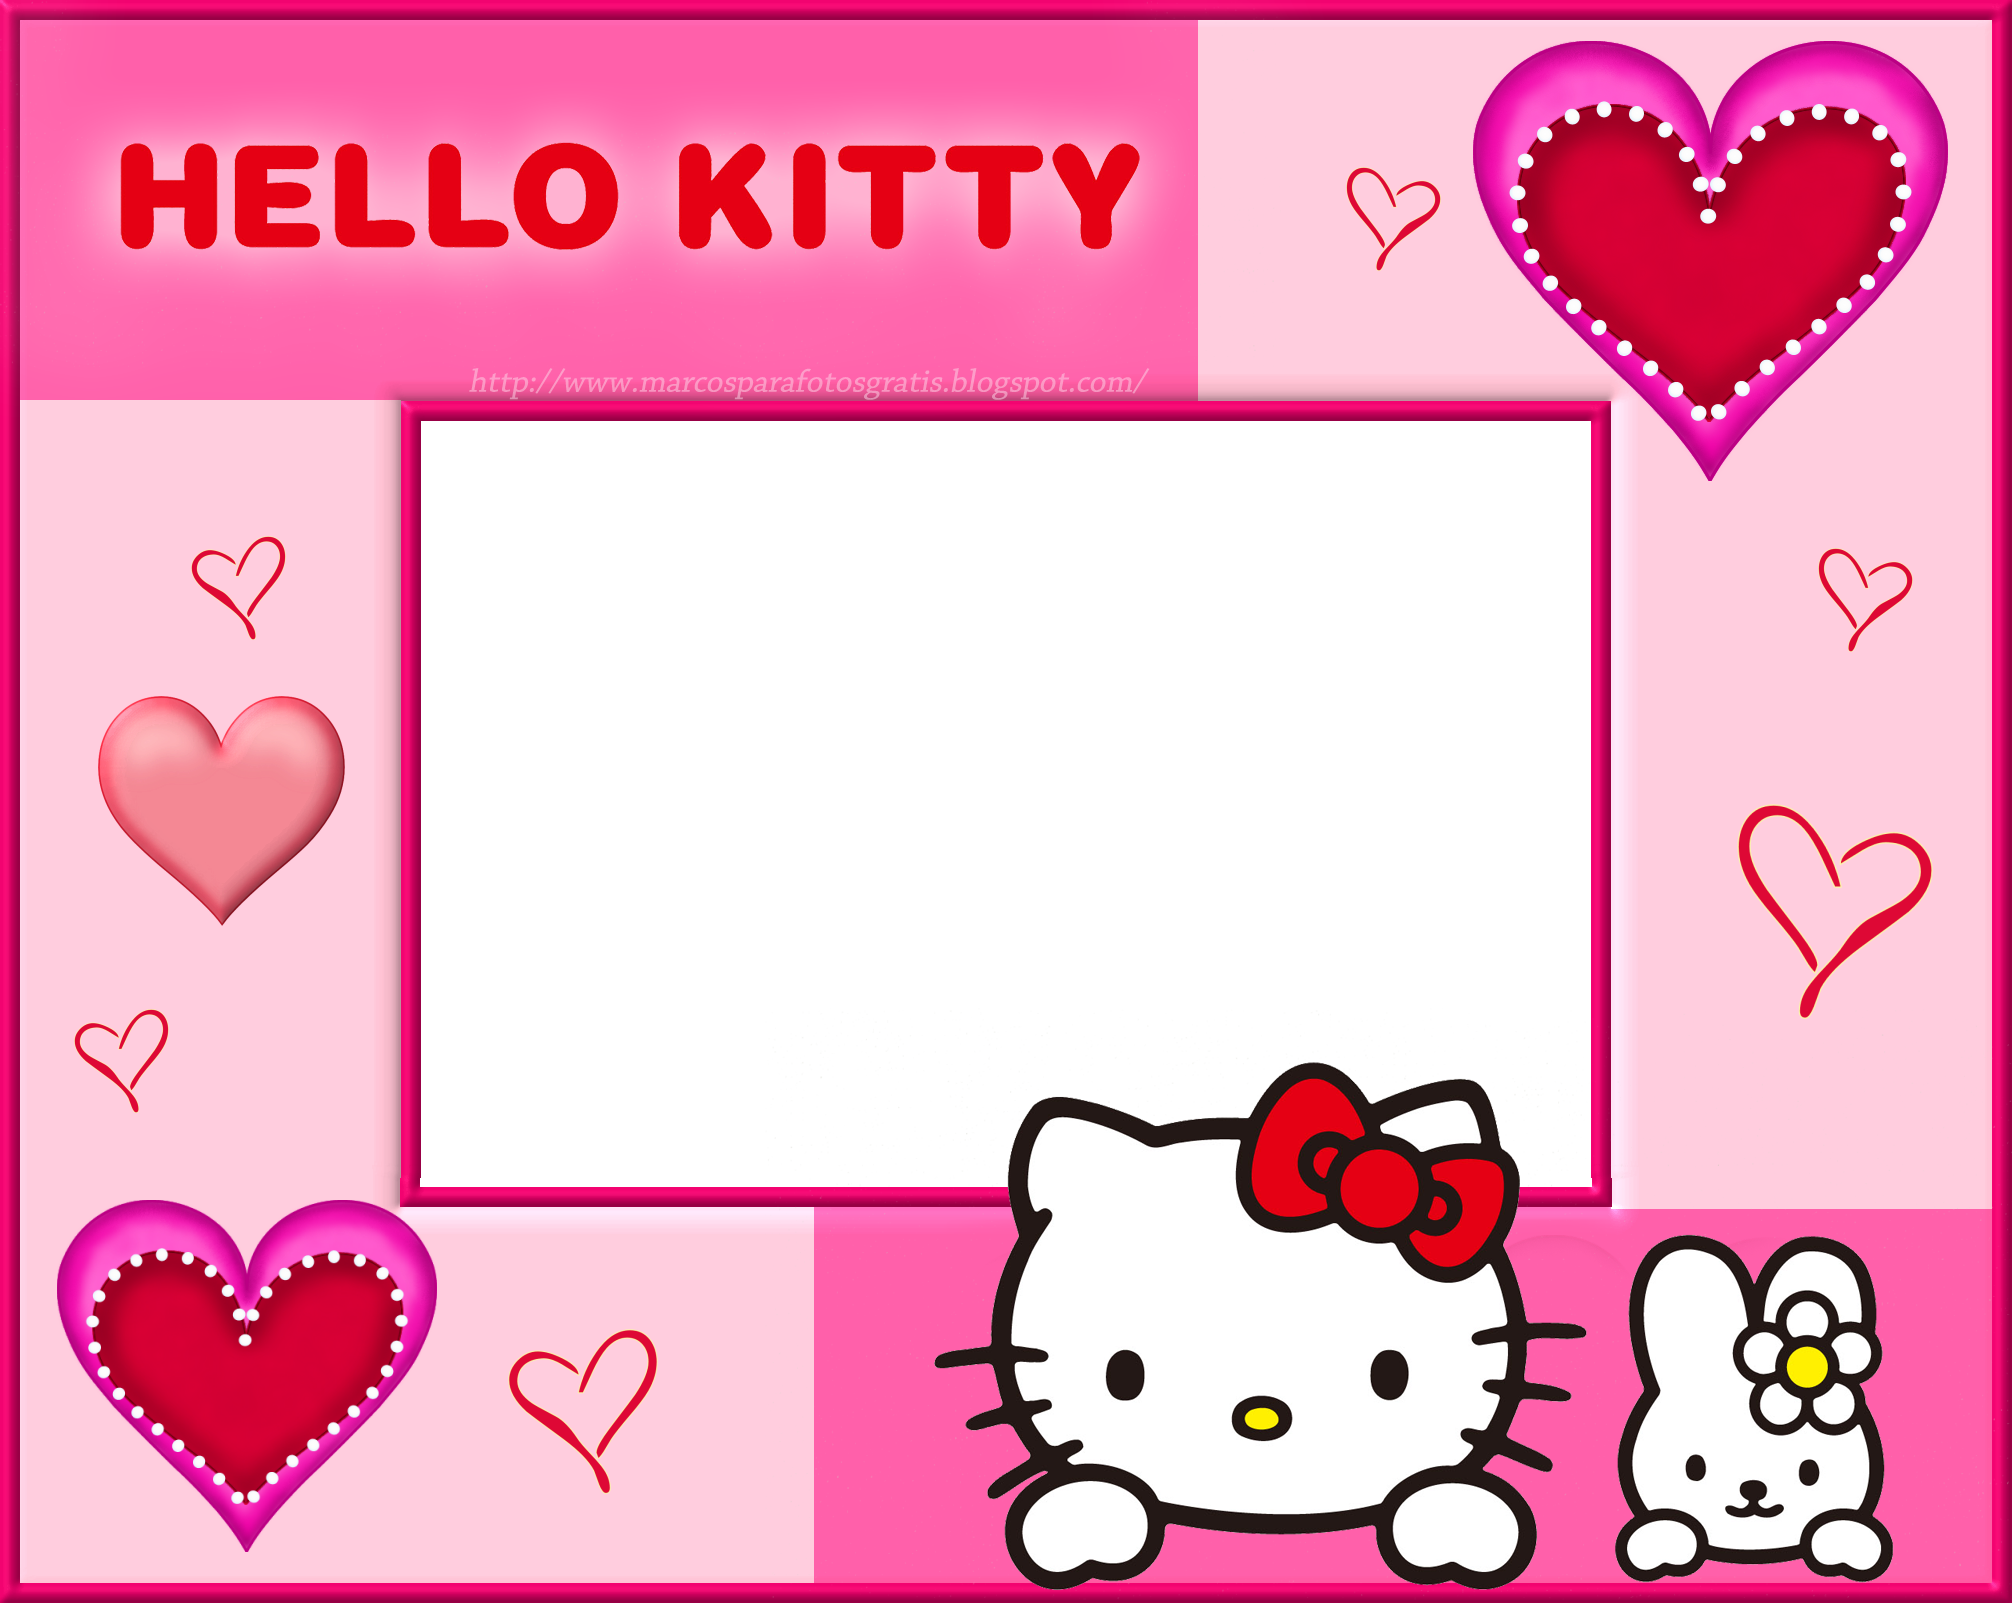 hd hello kitty images high definition tons of awesome hello kitty 2015 to for you can also upload and share your favorite hello kitty 2015